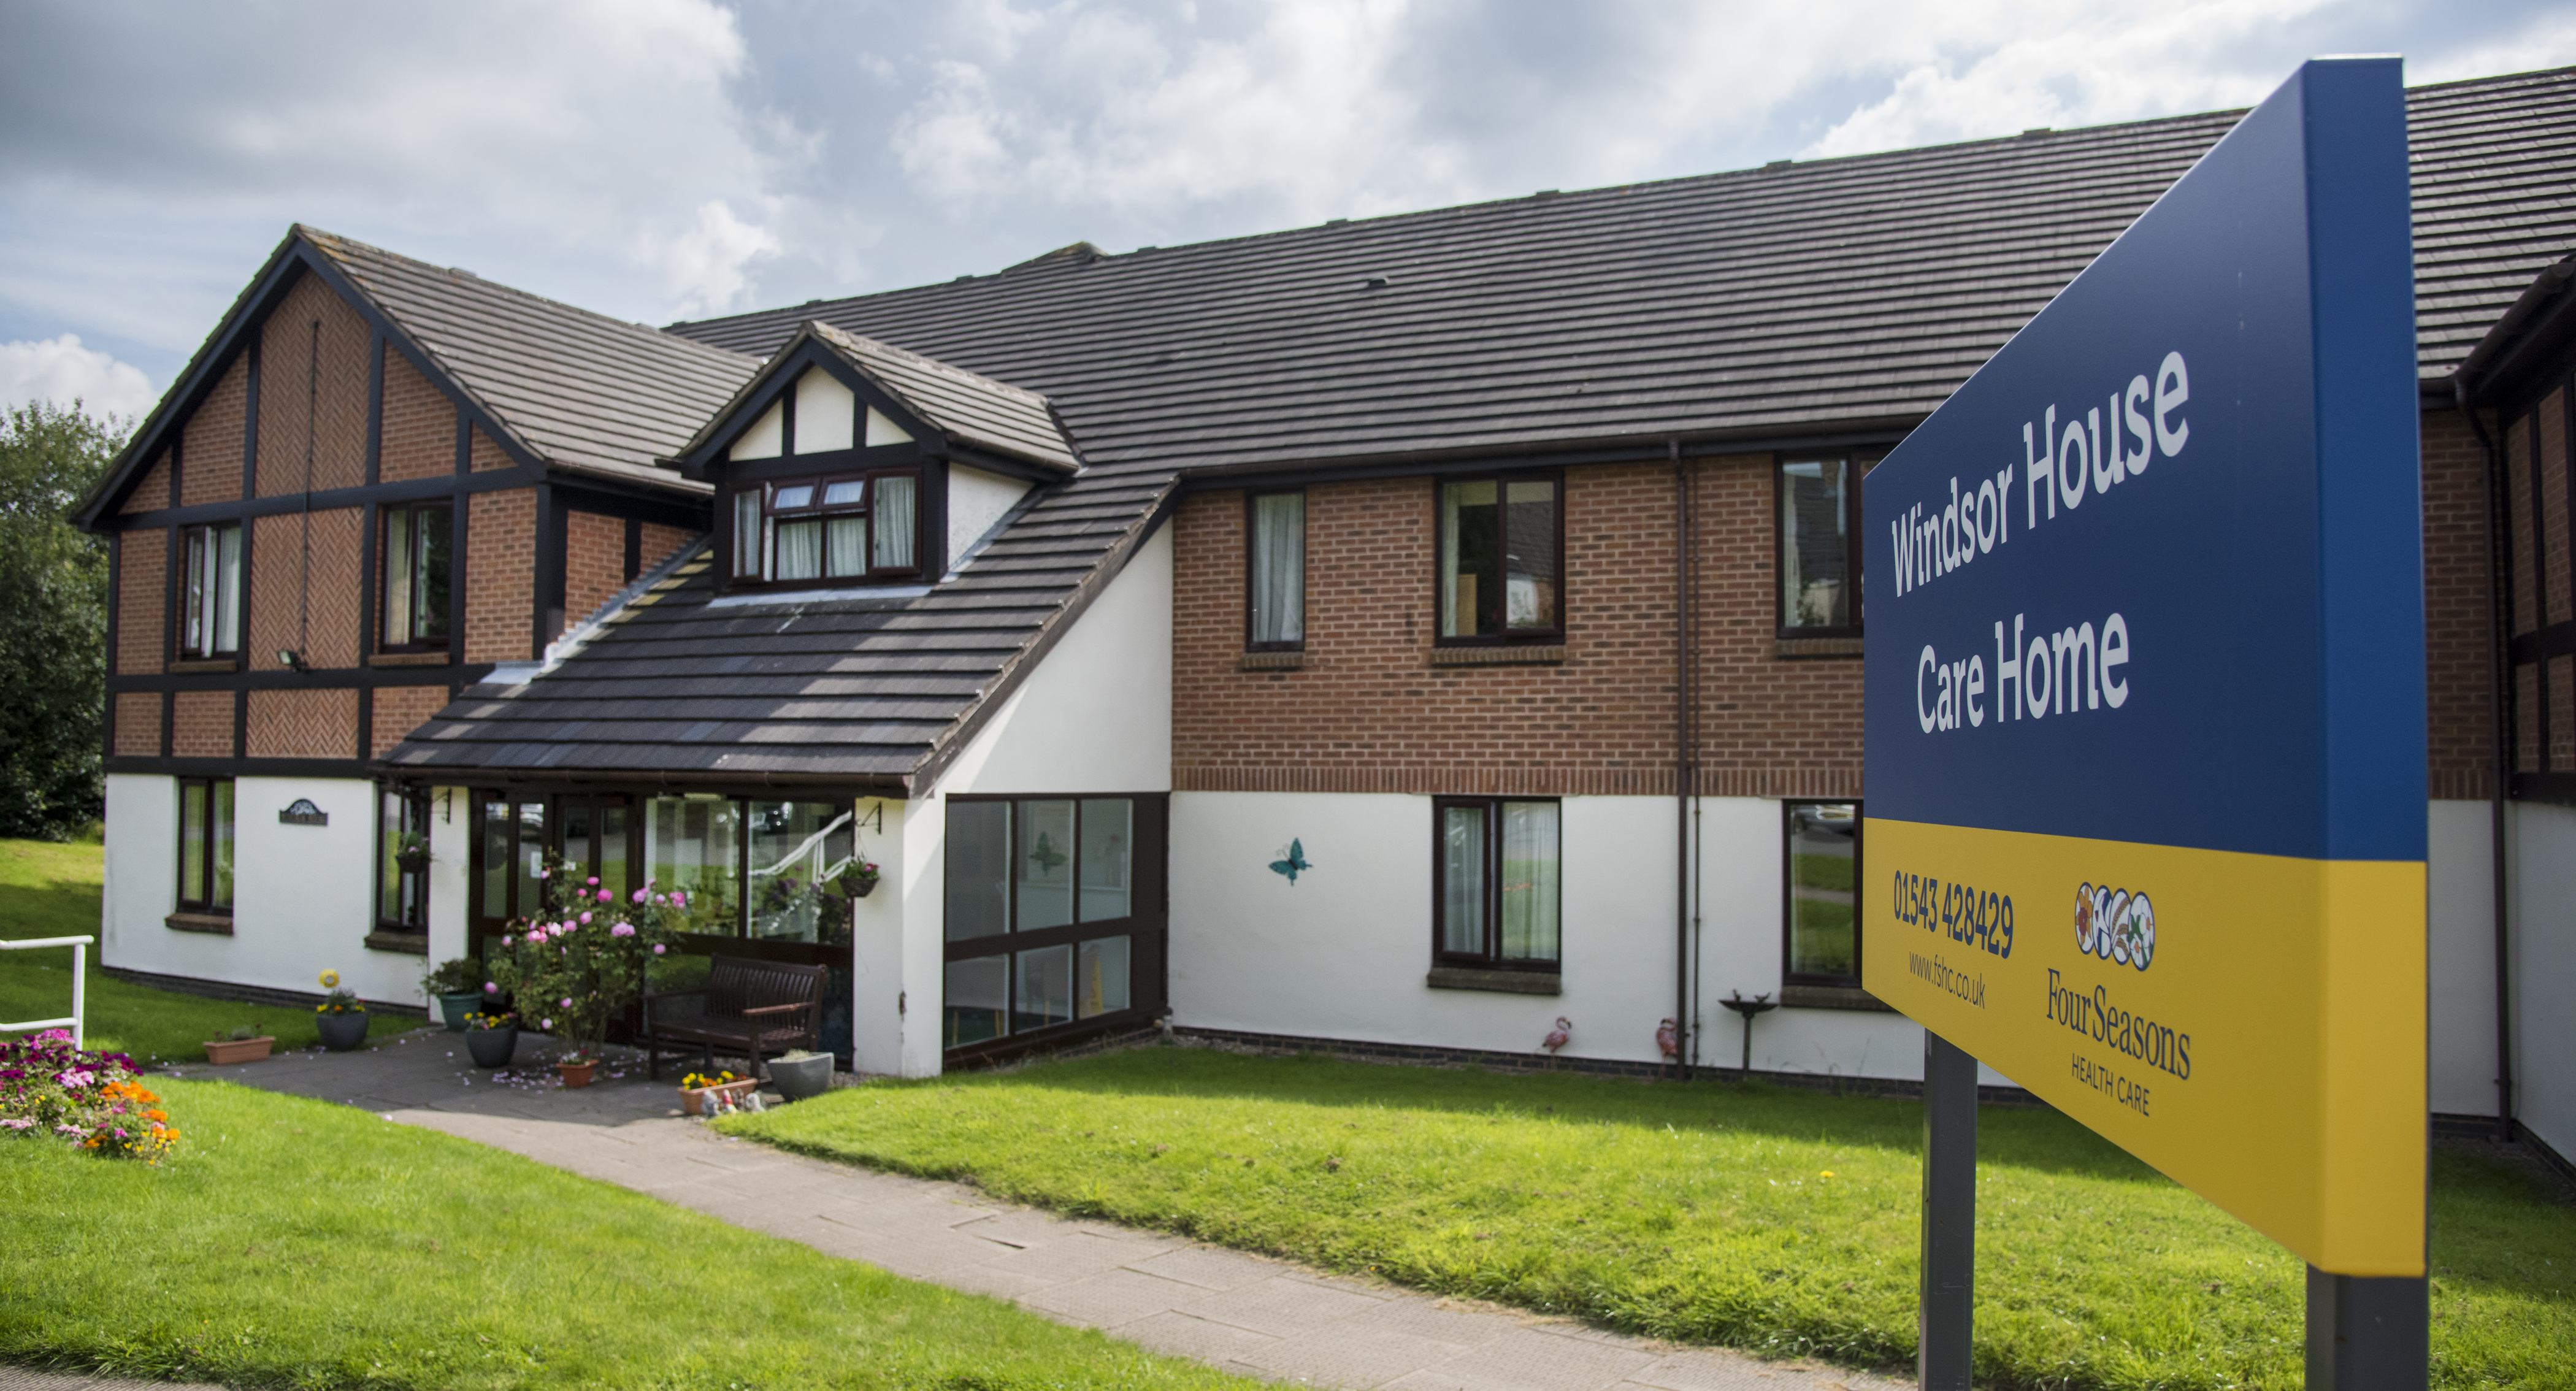 Windsor house care home hednesford cannock care home for Windsor house